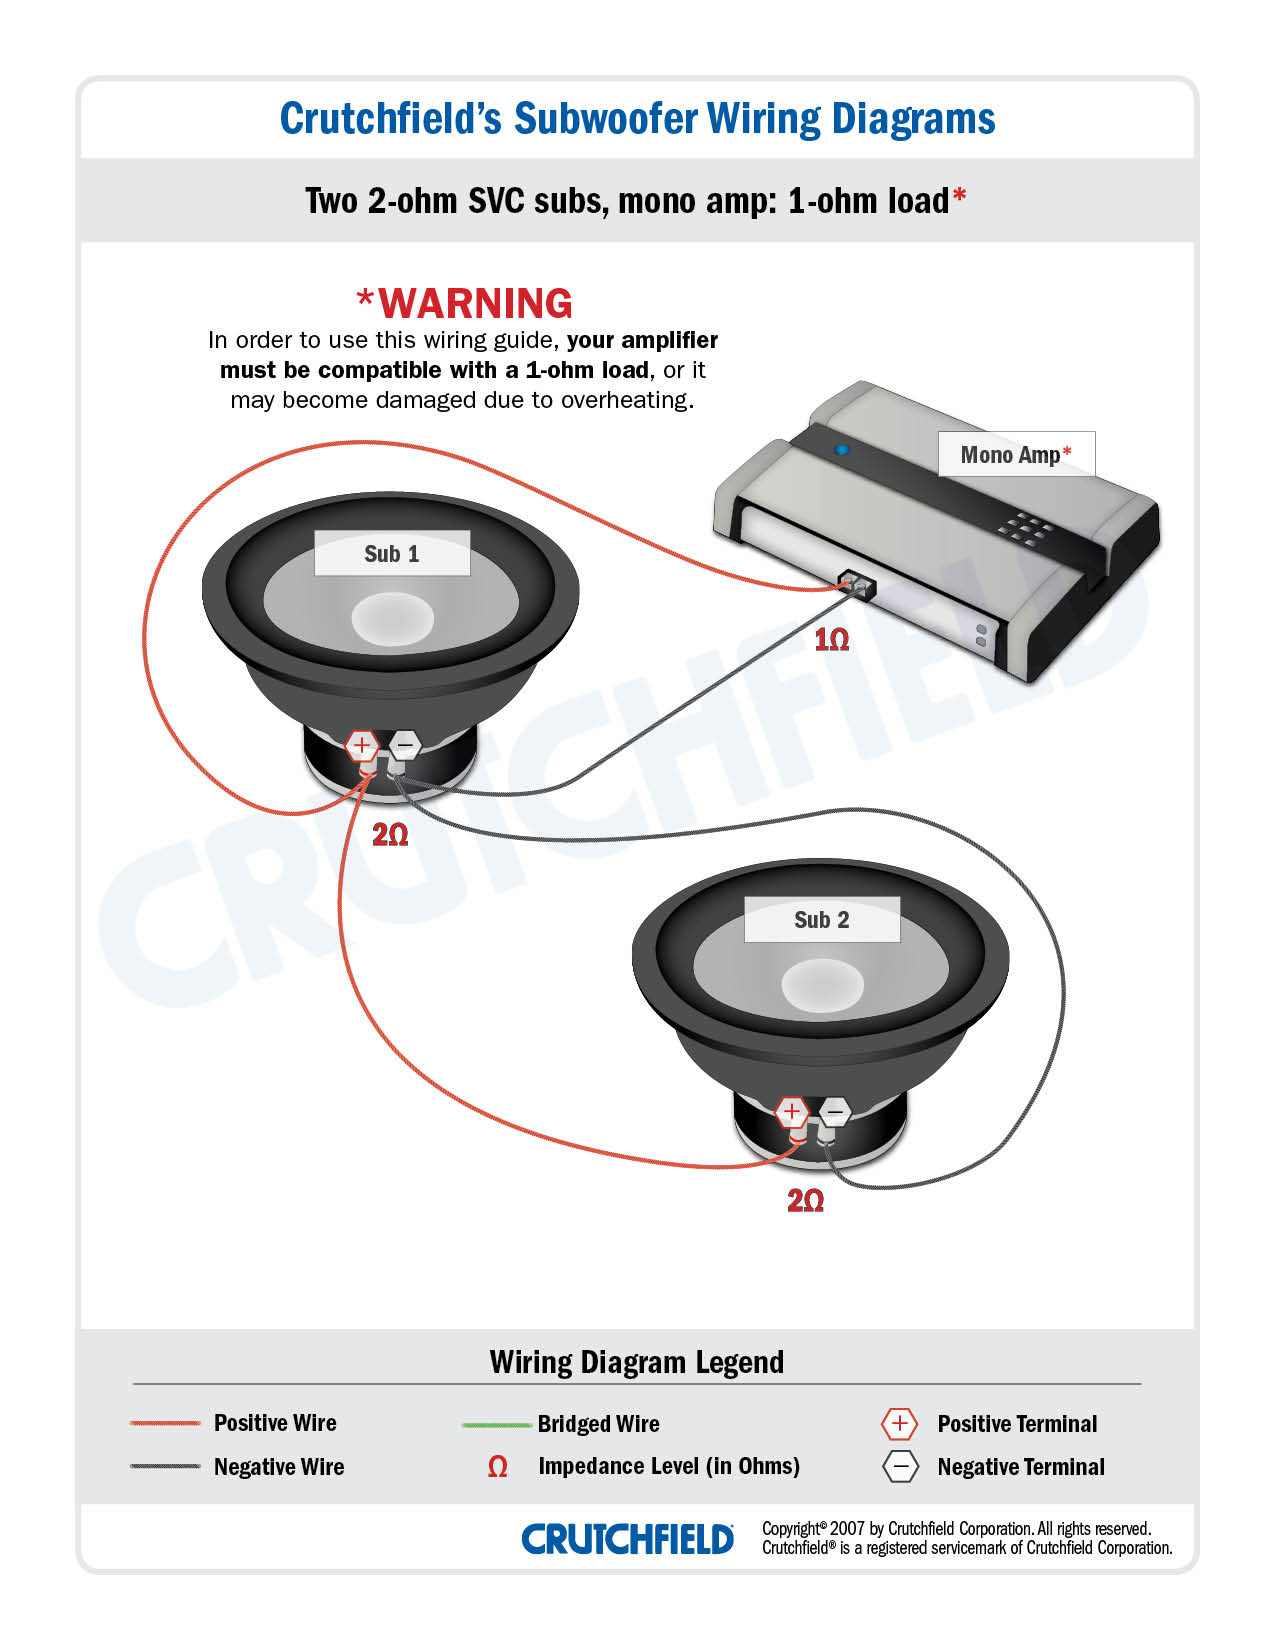 2 SVC 2 ohm mono low imp wiring subwoofers what's all this about ohms? Alpine Type R Wiring Diagram at gsmx.co